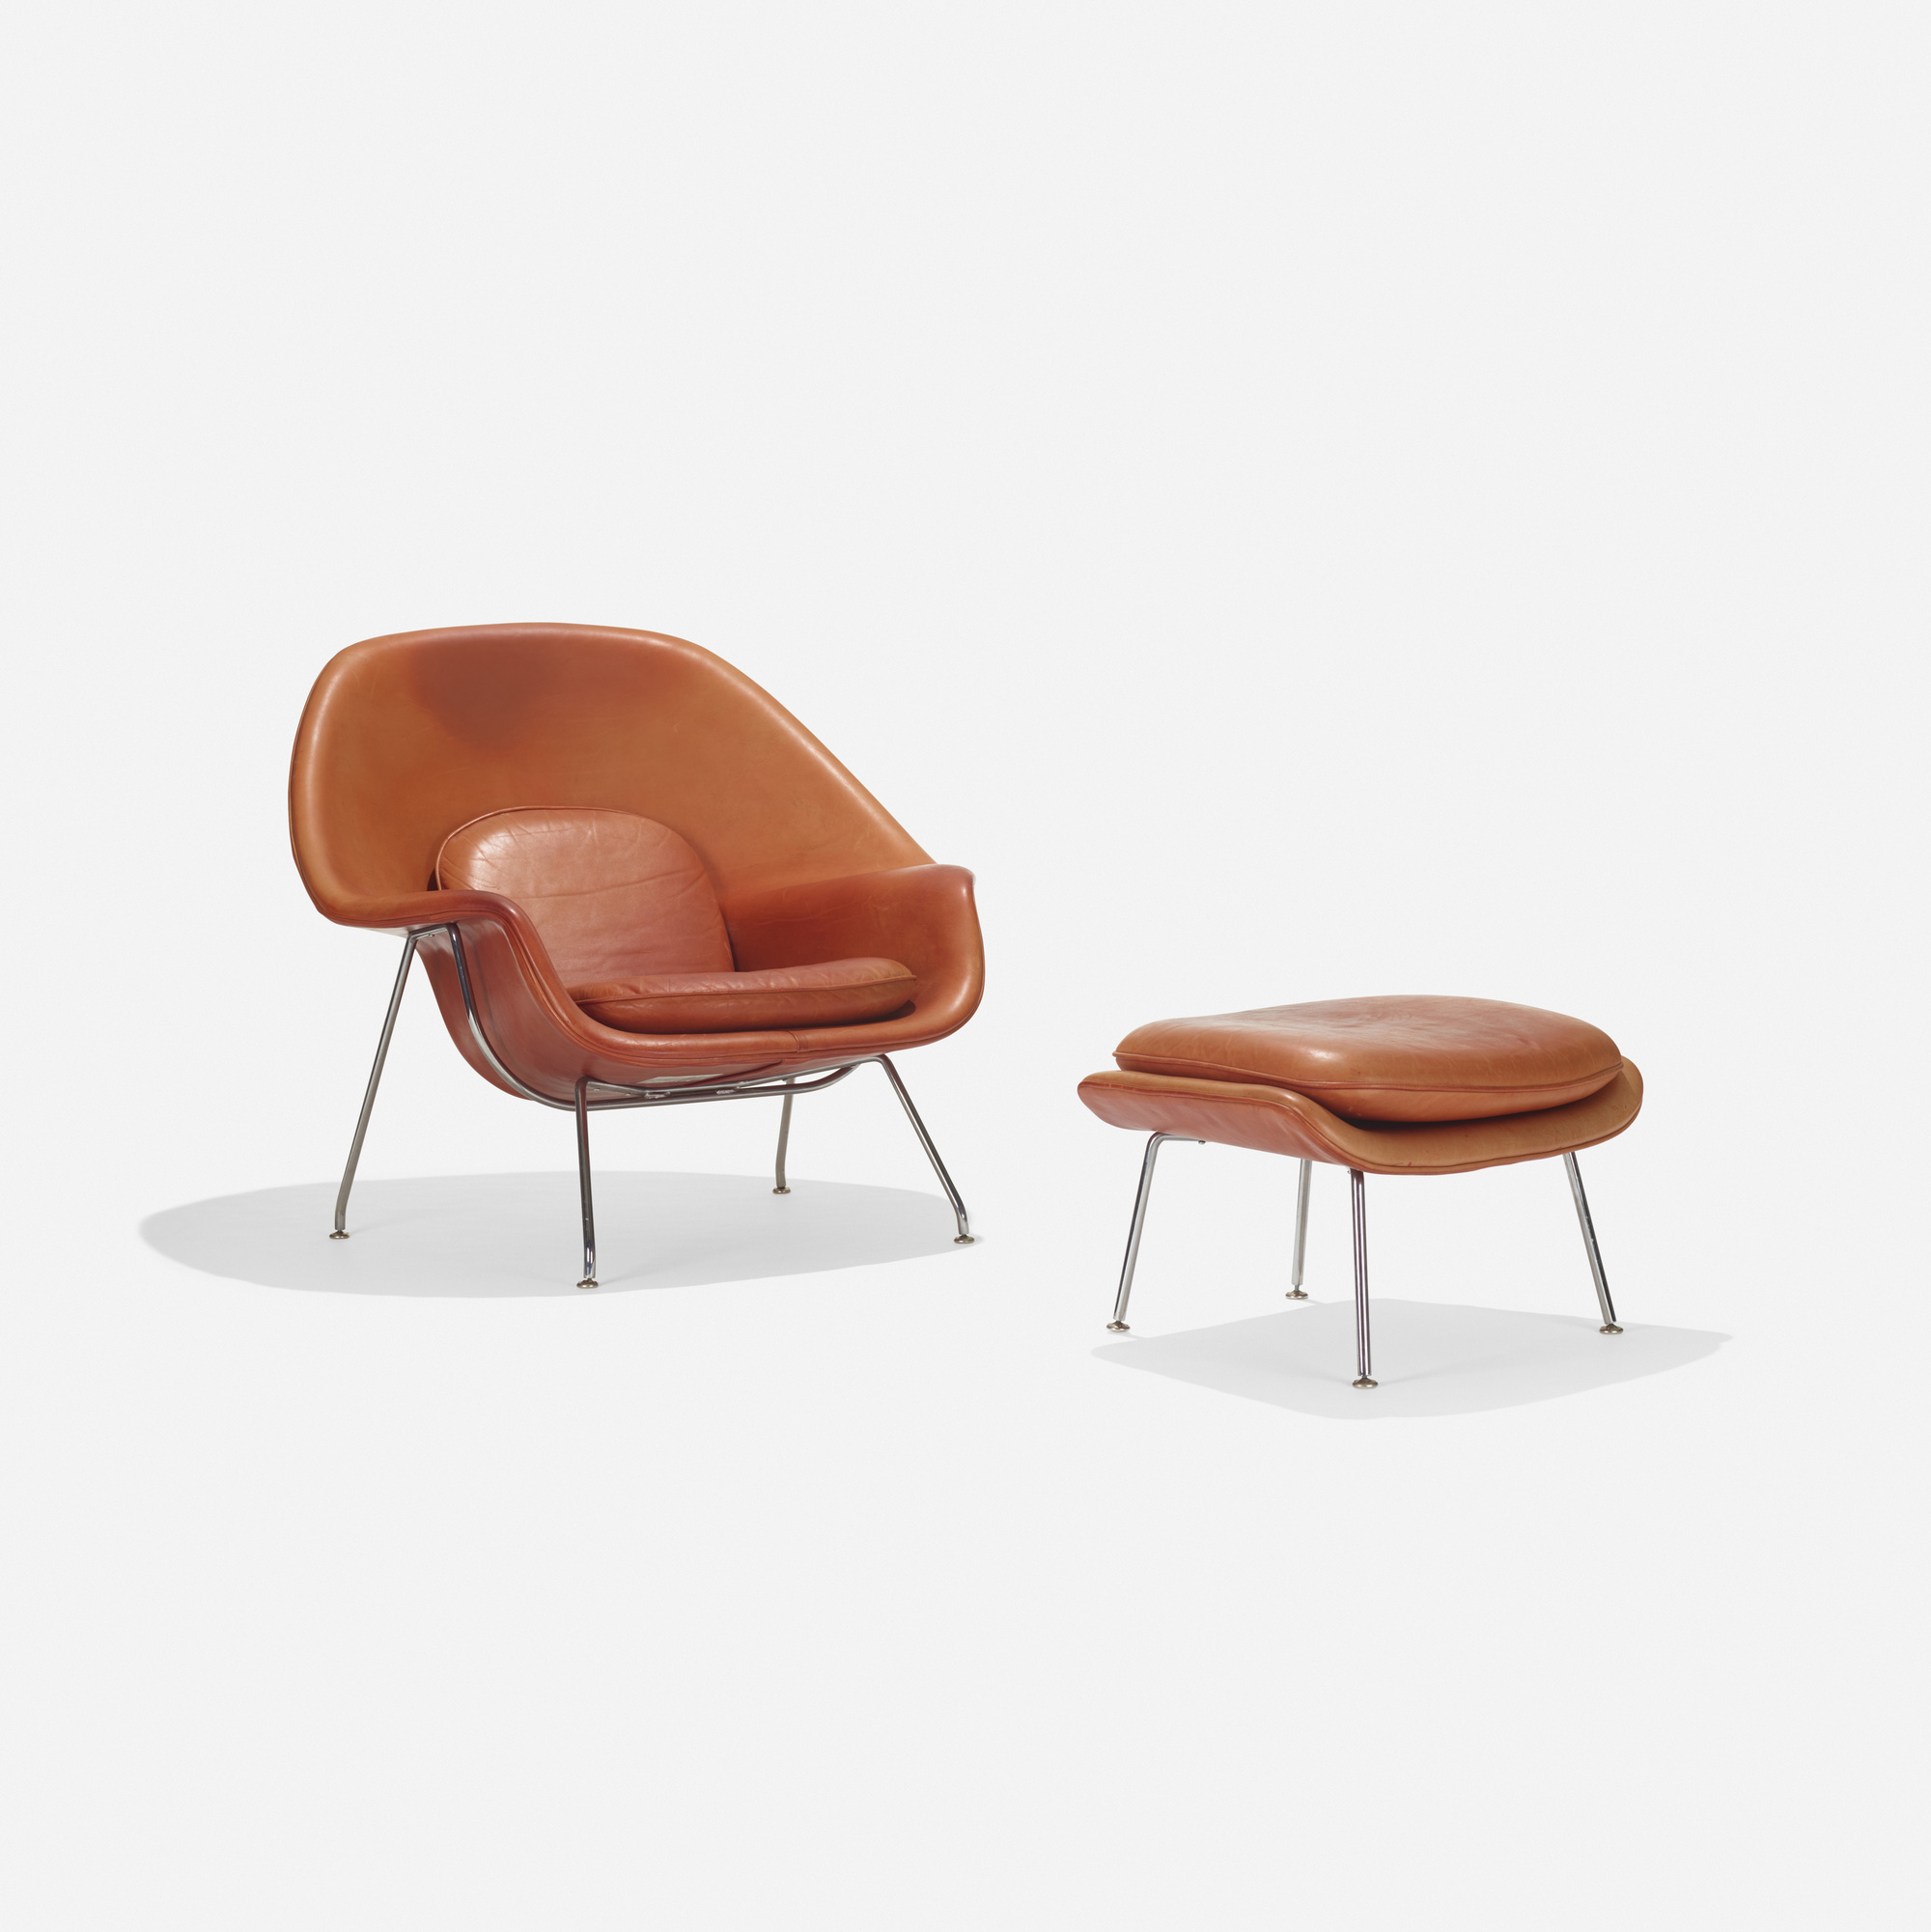 113 eero saarinen rare womb chair and ottoman 1 of 2